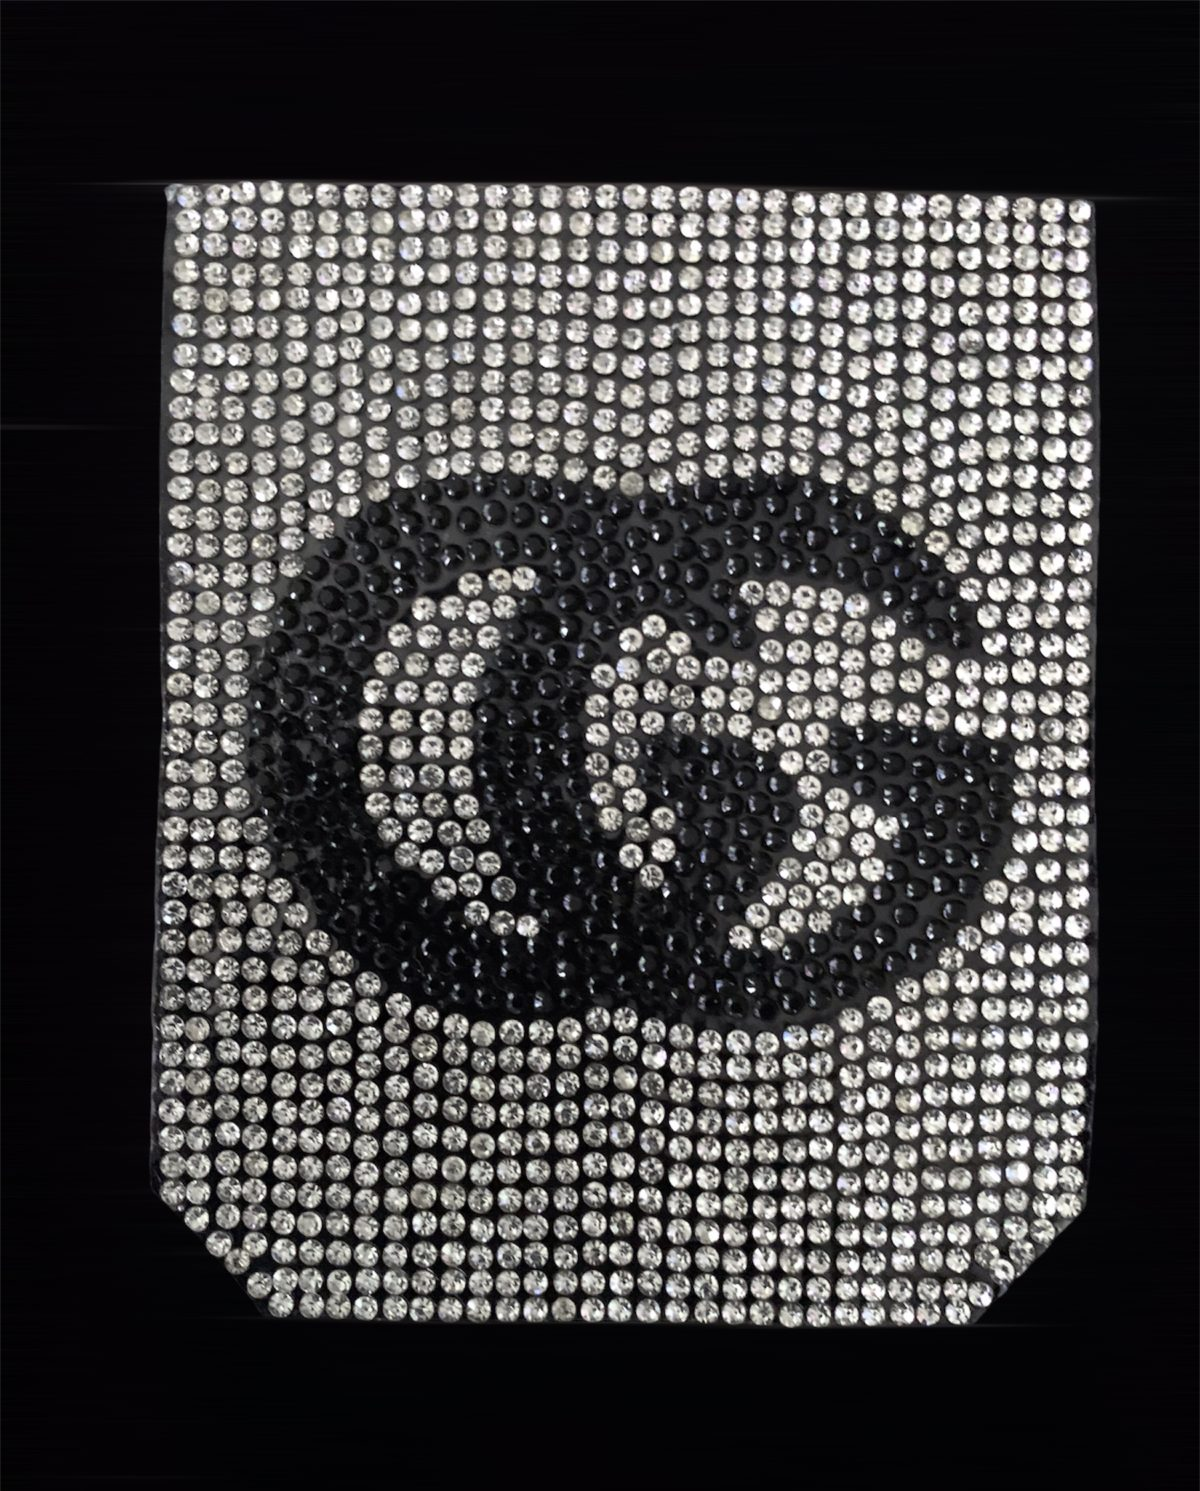 NEW Rhinestone GG Inspired Pocket Patch, Applique,  Iron On, Hot fix DIY clothing 2